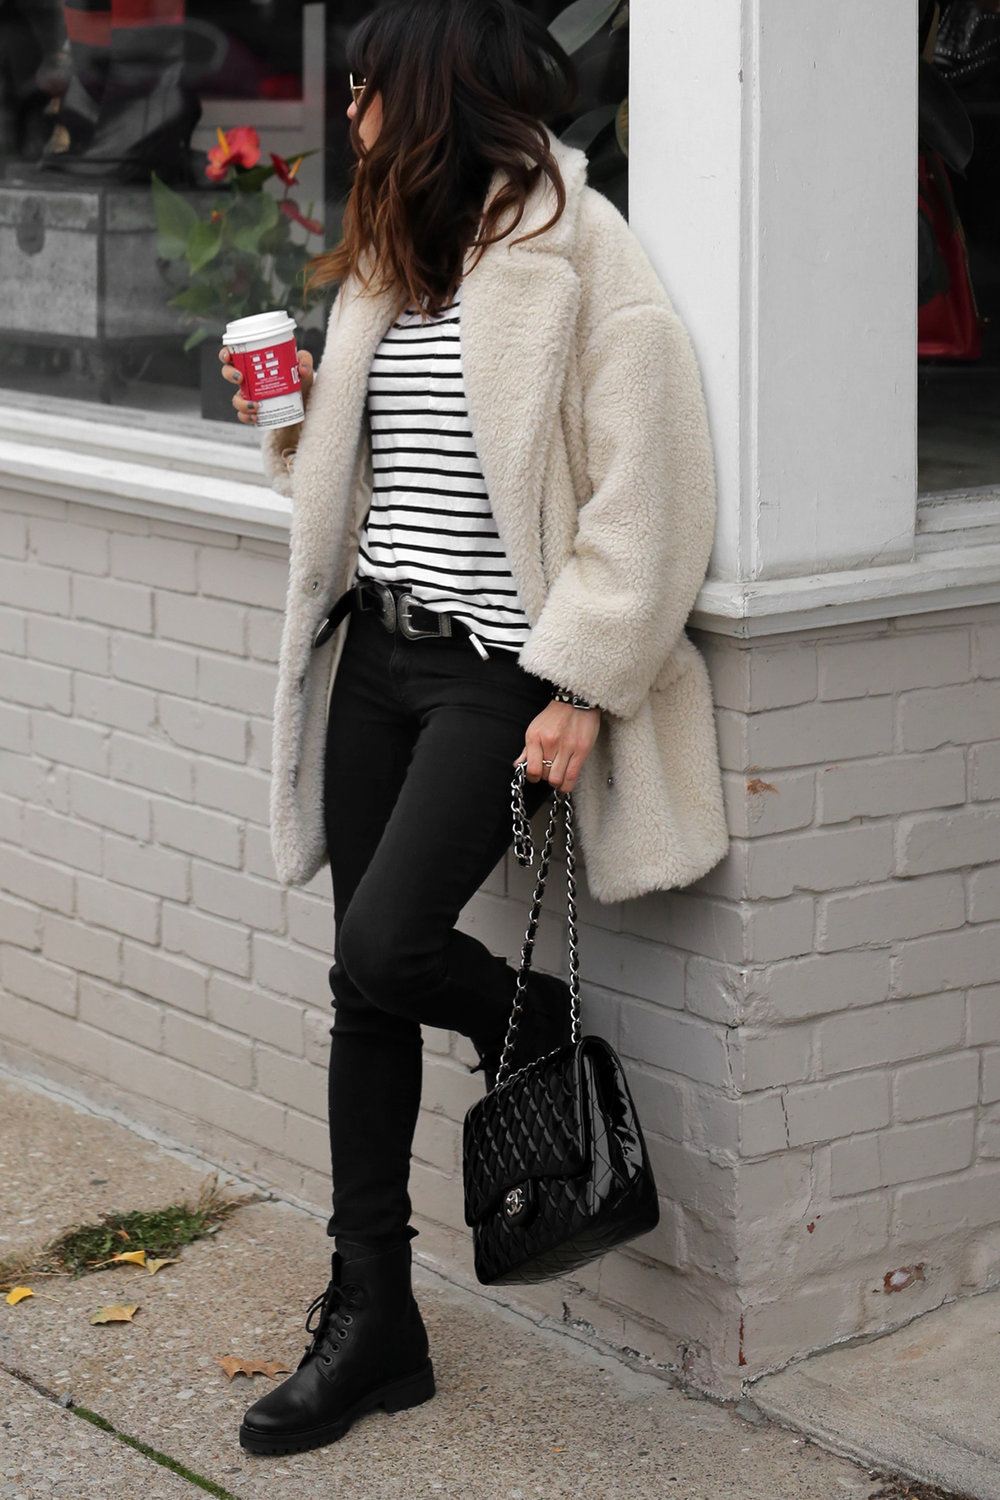 Fuzzy Topshop coat, striped top, black skinny jeans and patent leather Chanel jumbo bag street style - rocker chic - parisian style - french style_2876.jpg